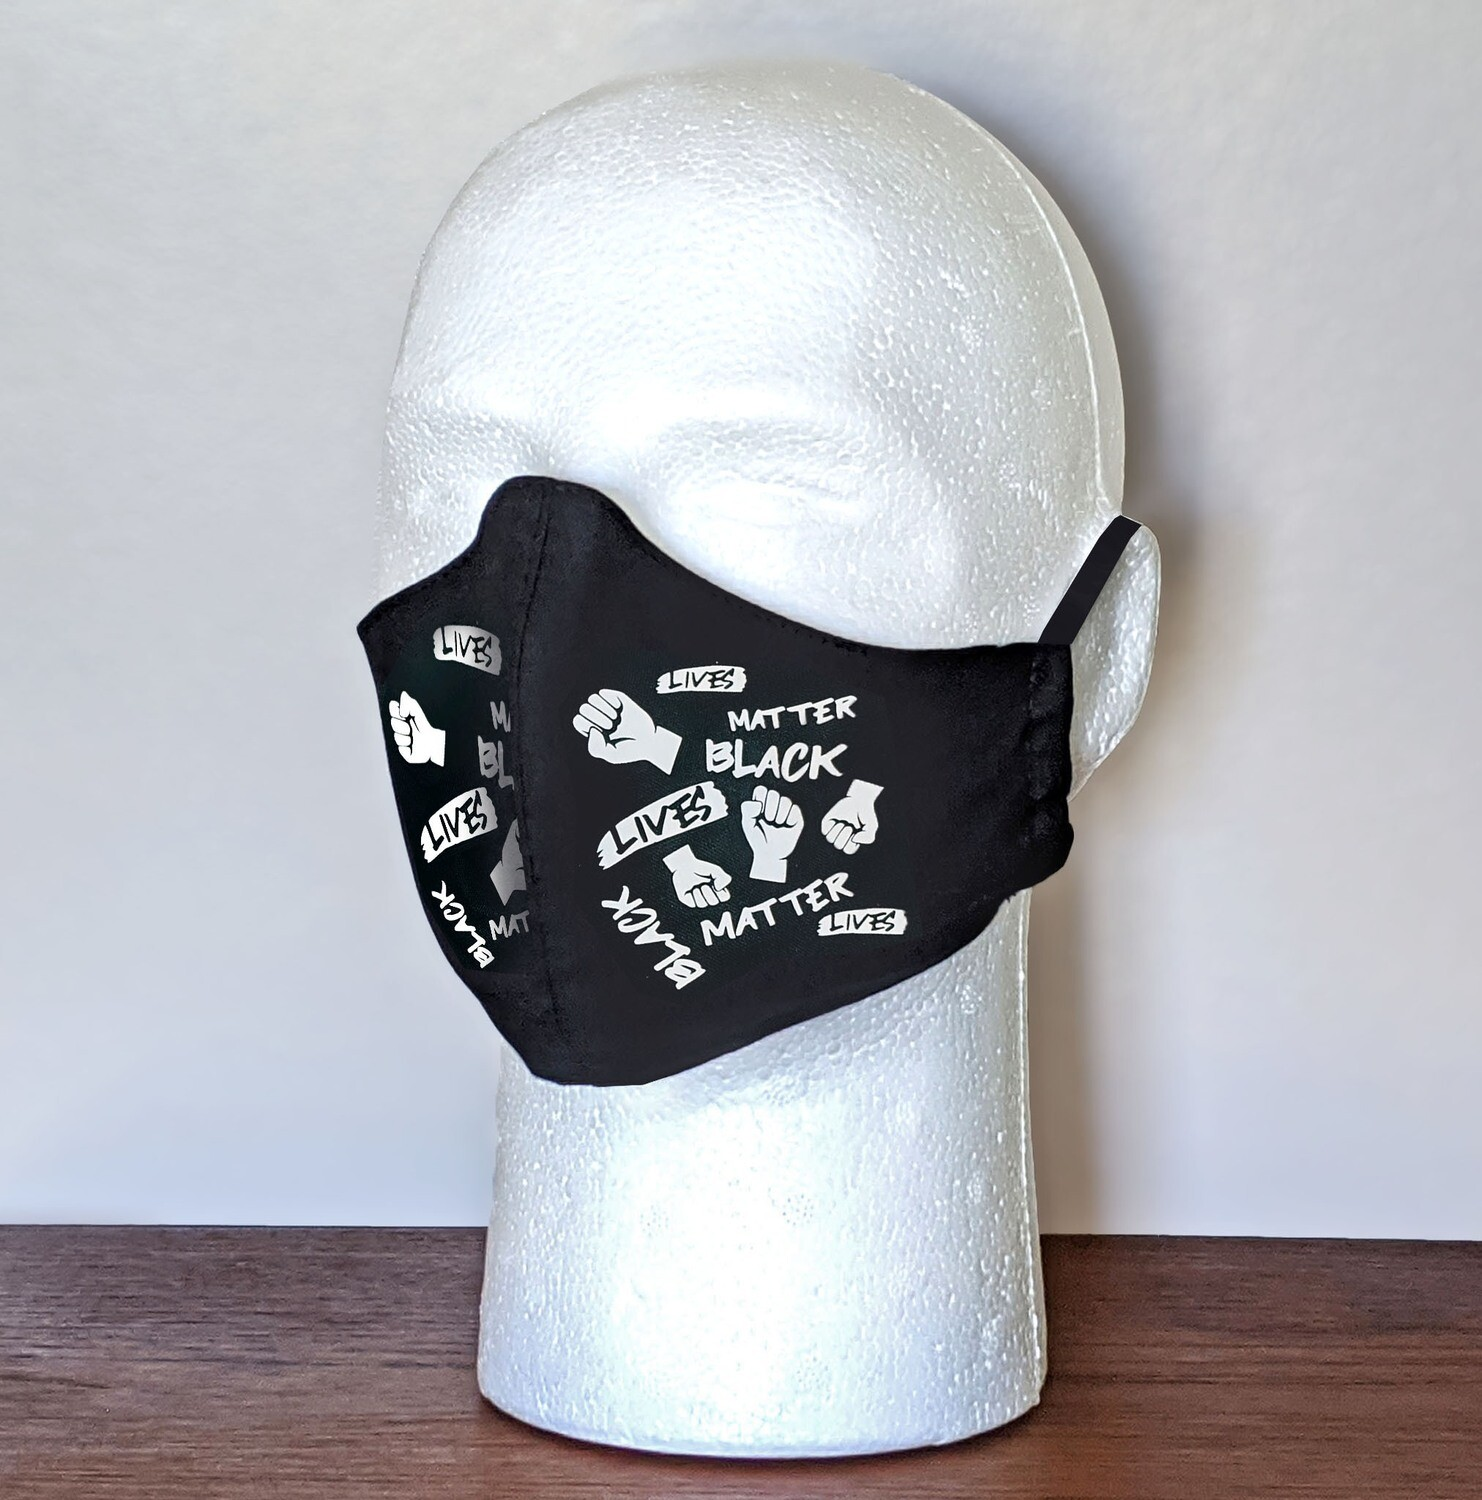 Pack of BLACK LIVES MATTER Face Masks, Unisex, Washable, Reusable, Double Layer for Smog, Pollen, Dust, Smoke. Made in USA